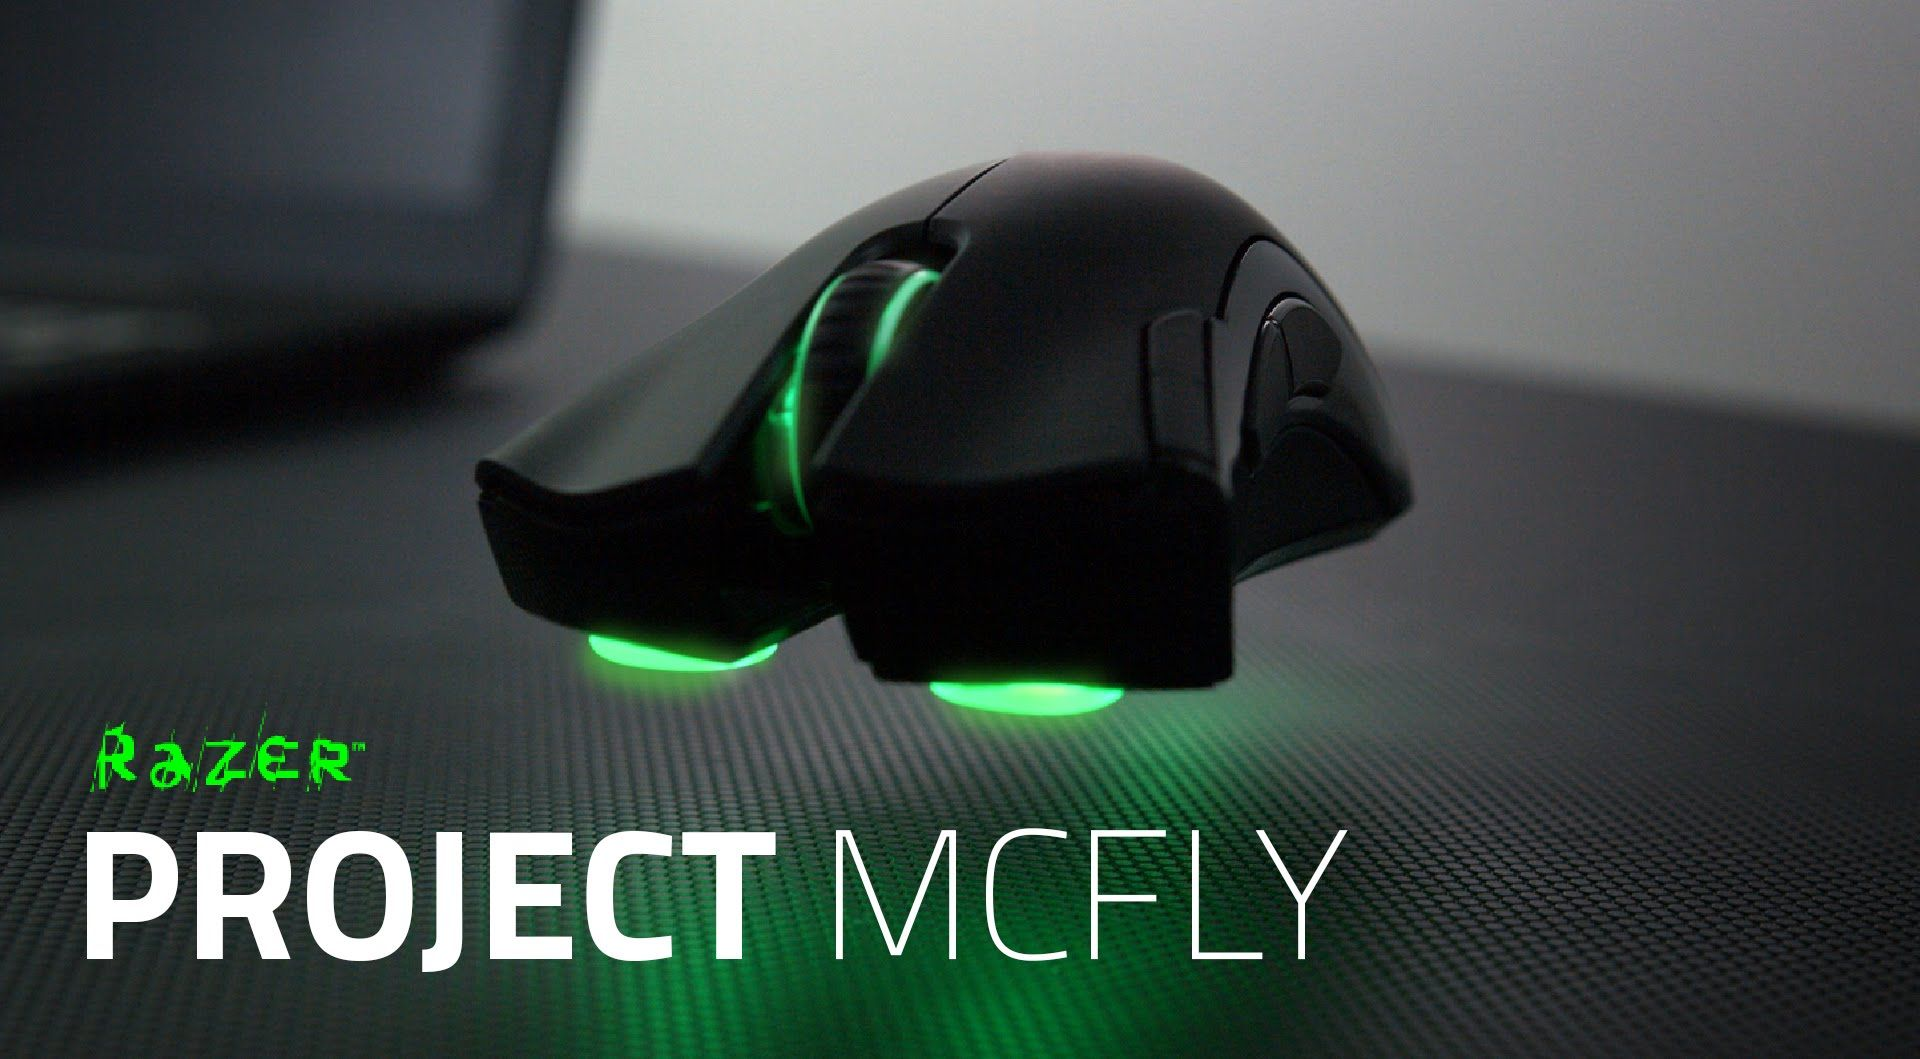 The Hovering Mouse - Project McFly   Razer   TECH GEAR